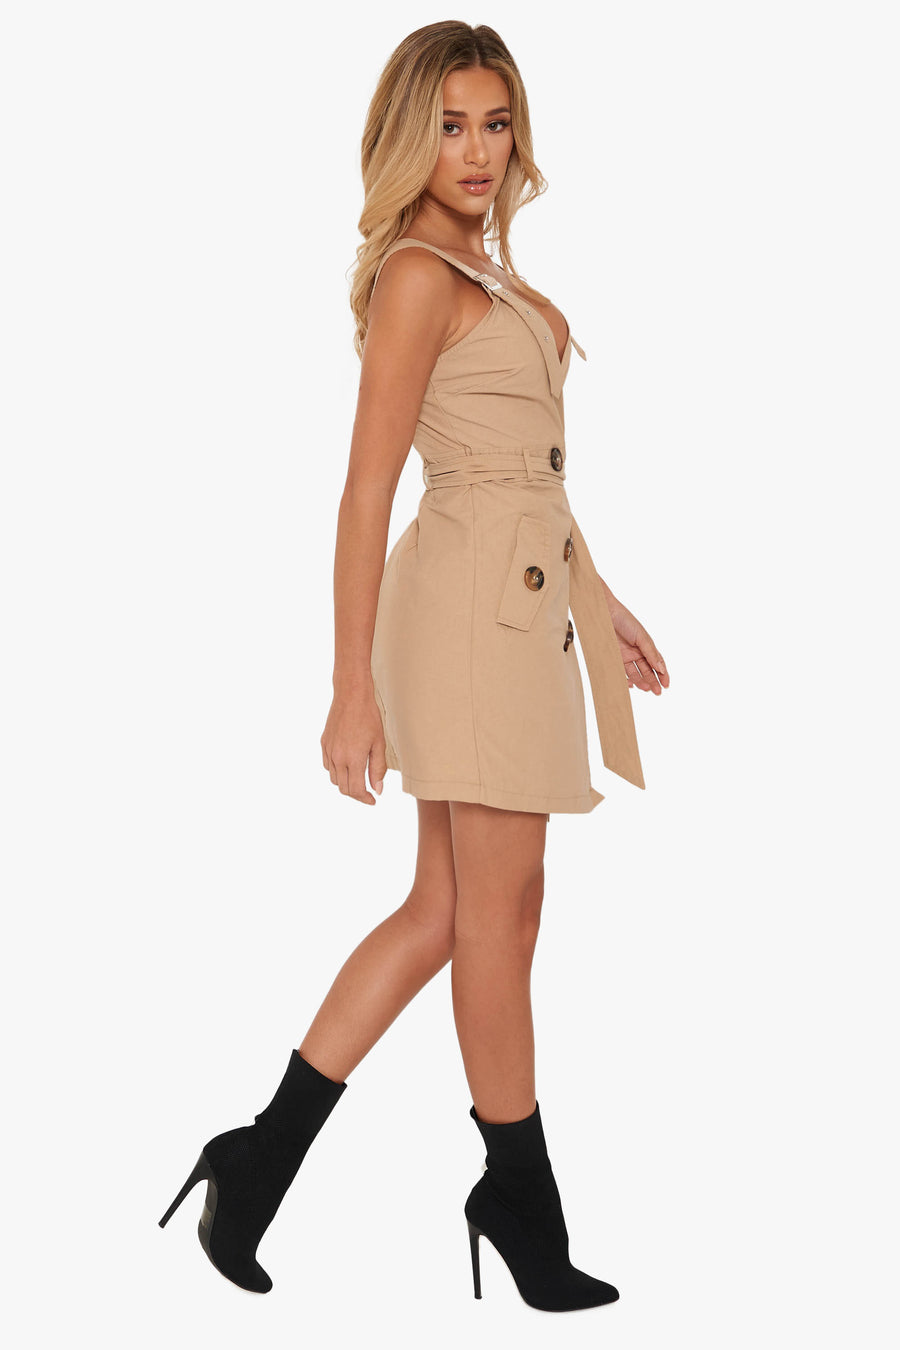 Chasing Sunsets Khaki Dress